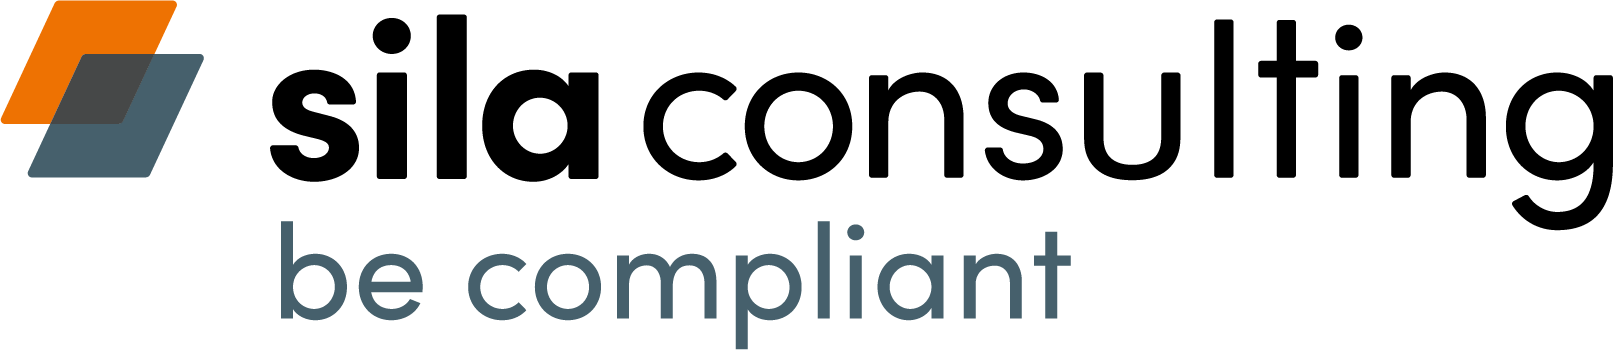 Logo sila consulting be compliant